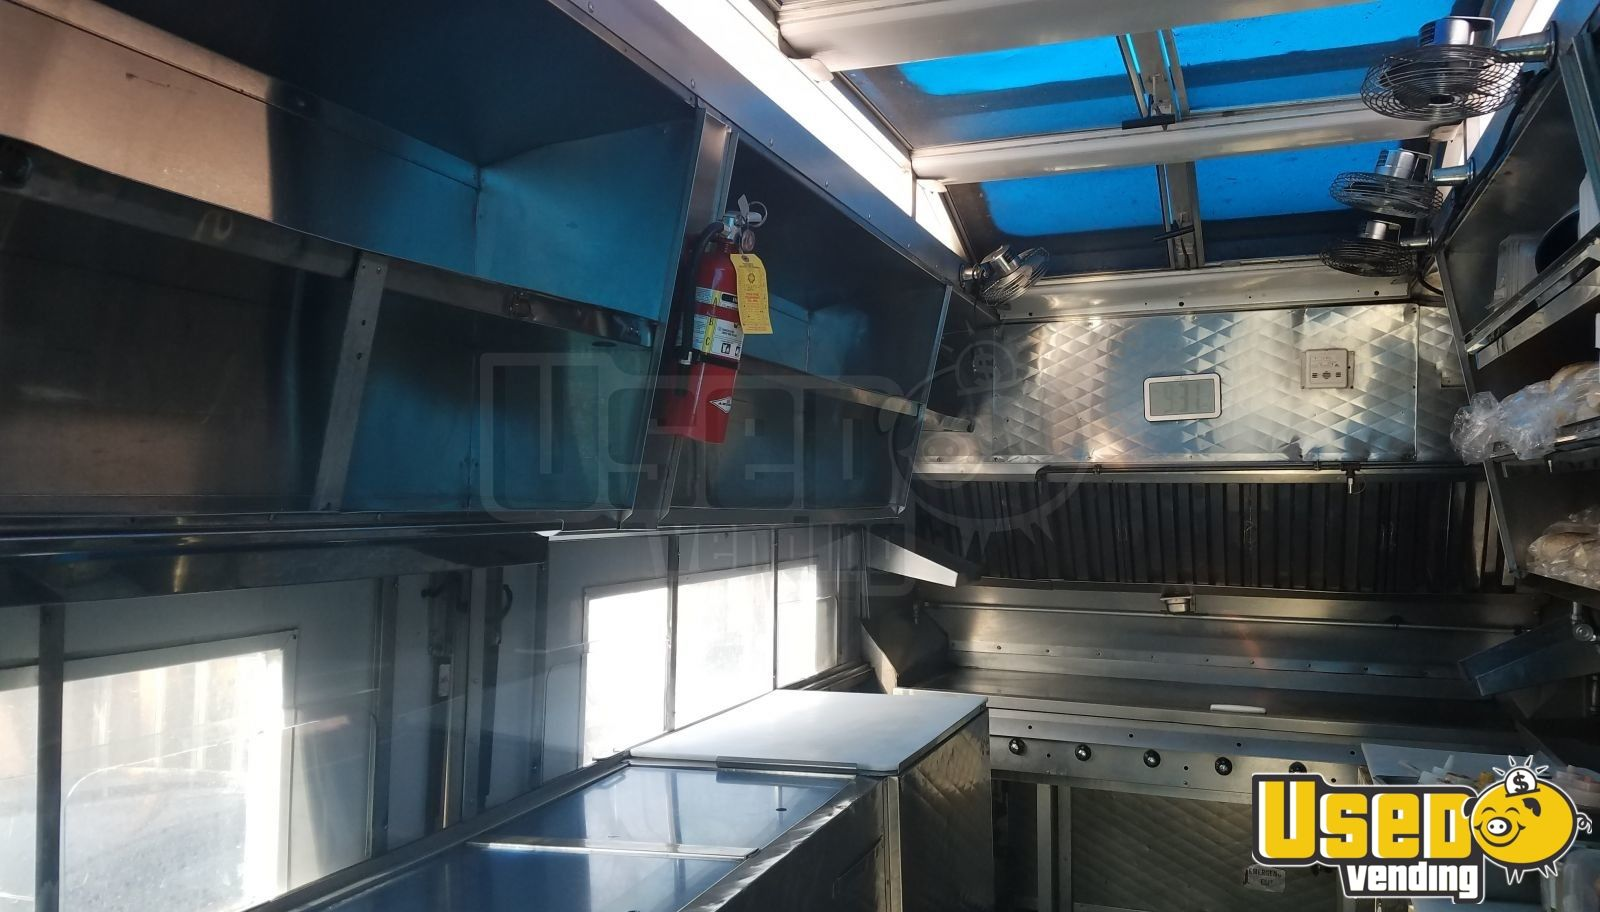 1988 Aa Cater Truck All-purpose Food Truck Backup Camera Utah Gas Engine for Sale - 7